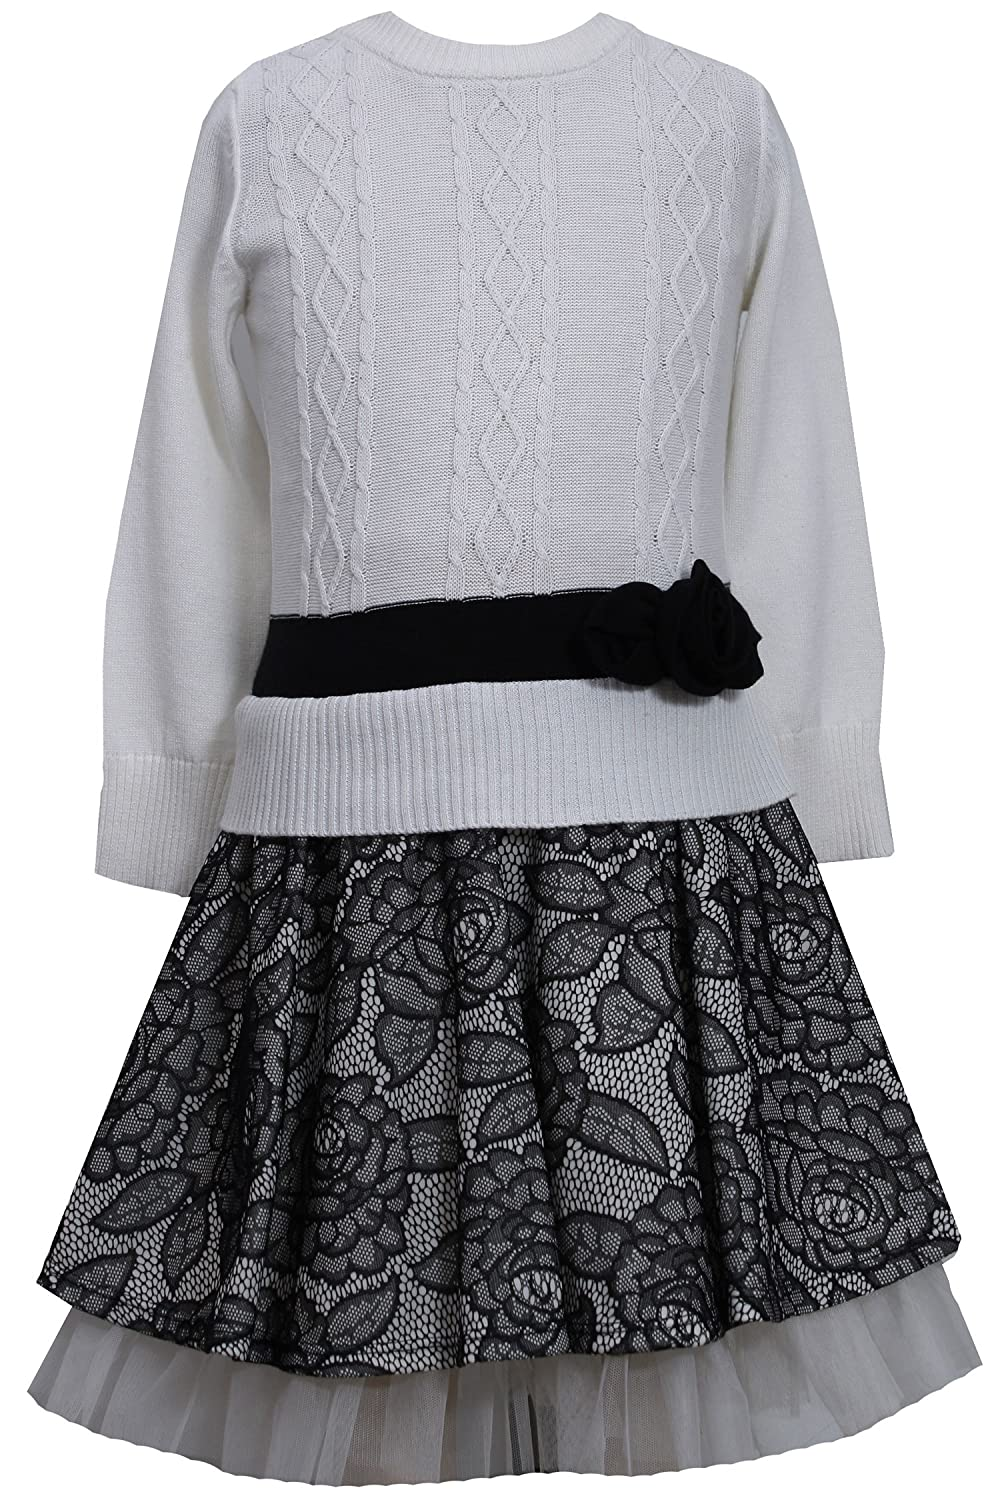 76bb2493d224 Amazon.com: Bonnie Jean Girls White Sweater & Lace Skirt Holiday Dress, 6:  Clothing